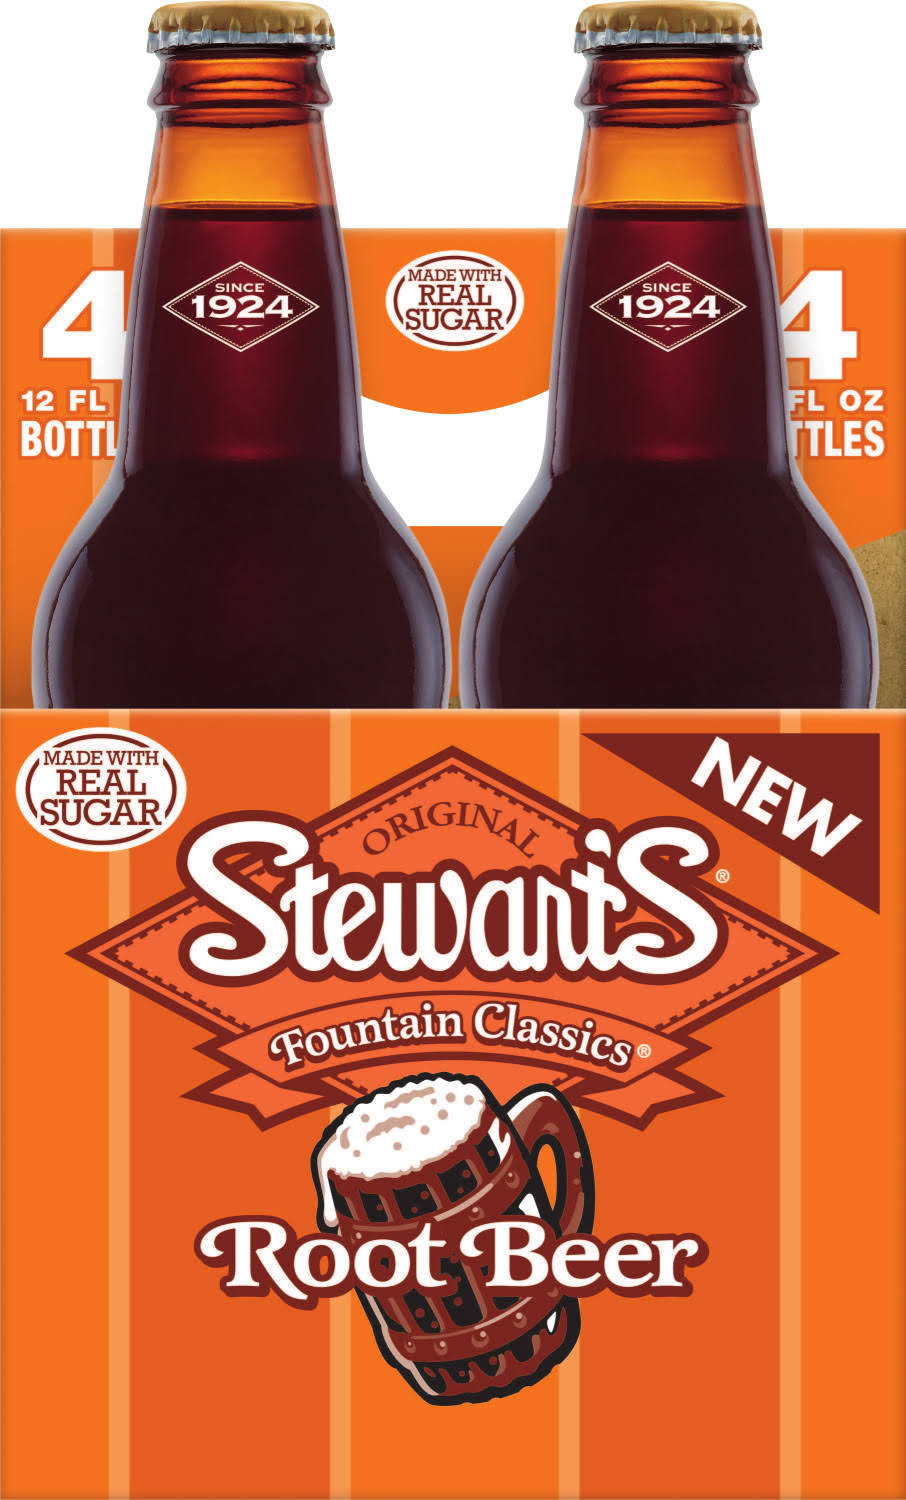 Stewart's Root Beer Made with Sugar - 4 pack, 12 fl oz bottles